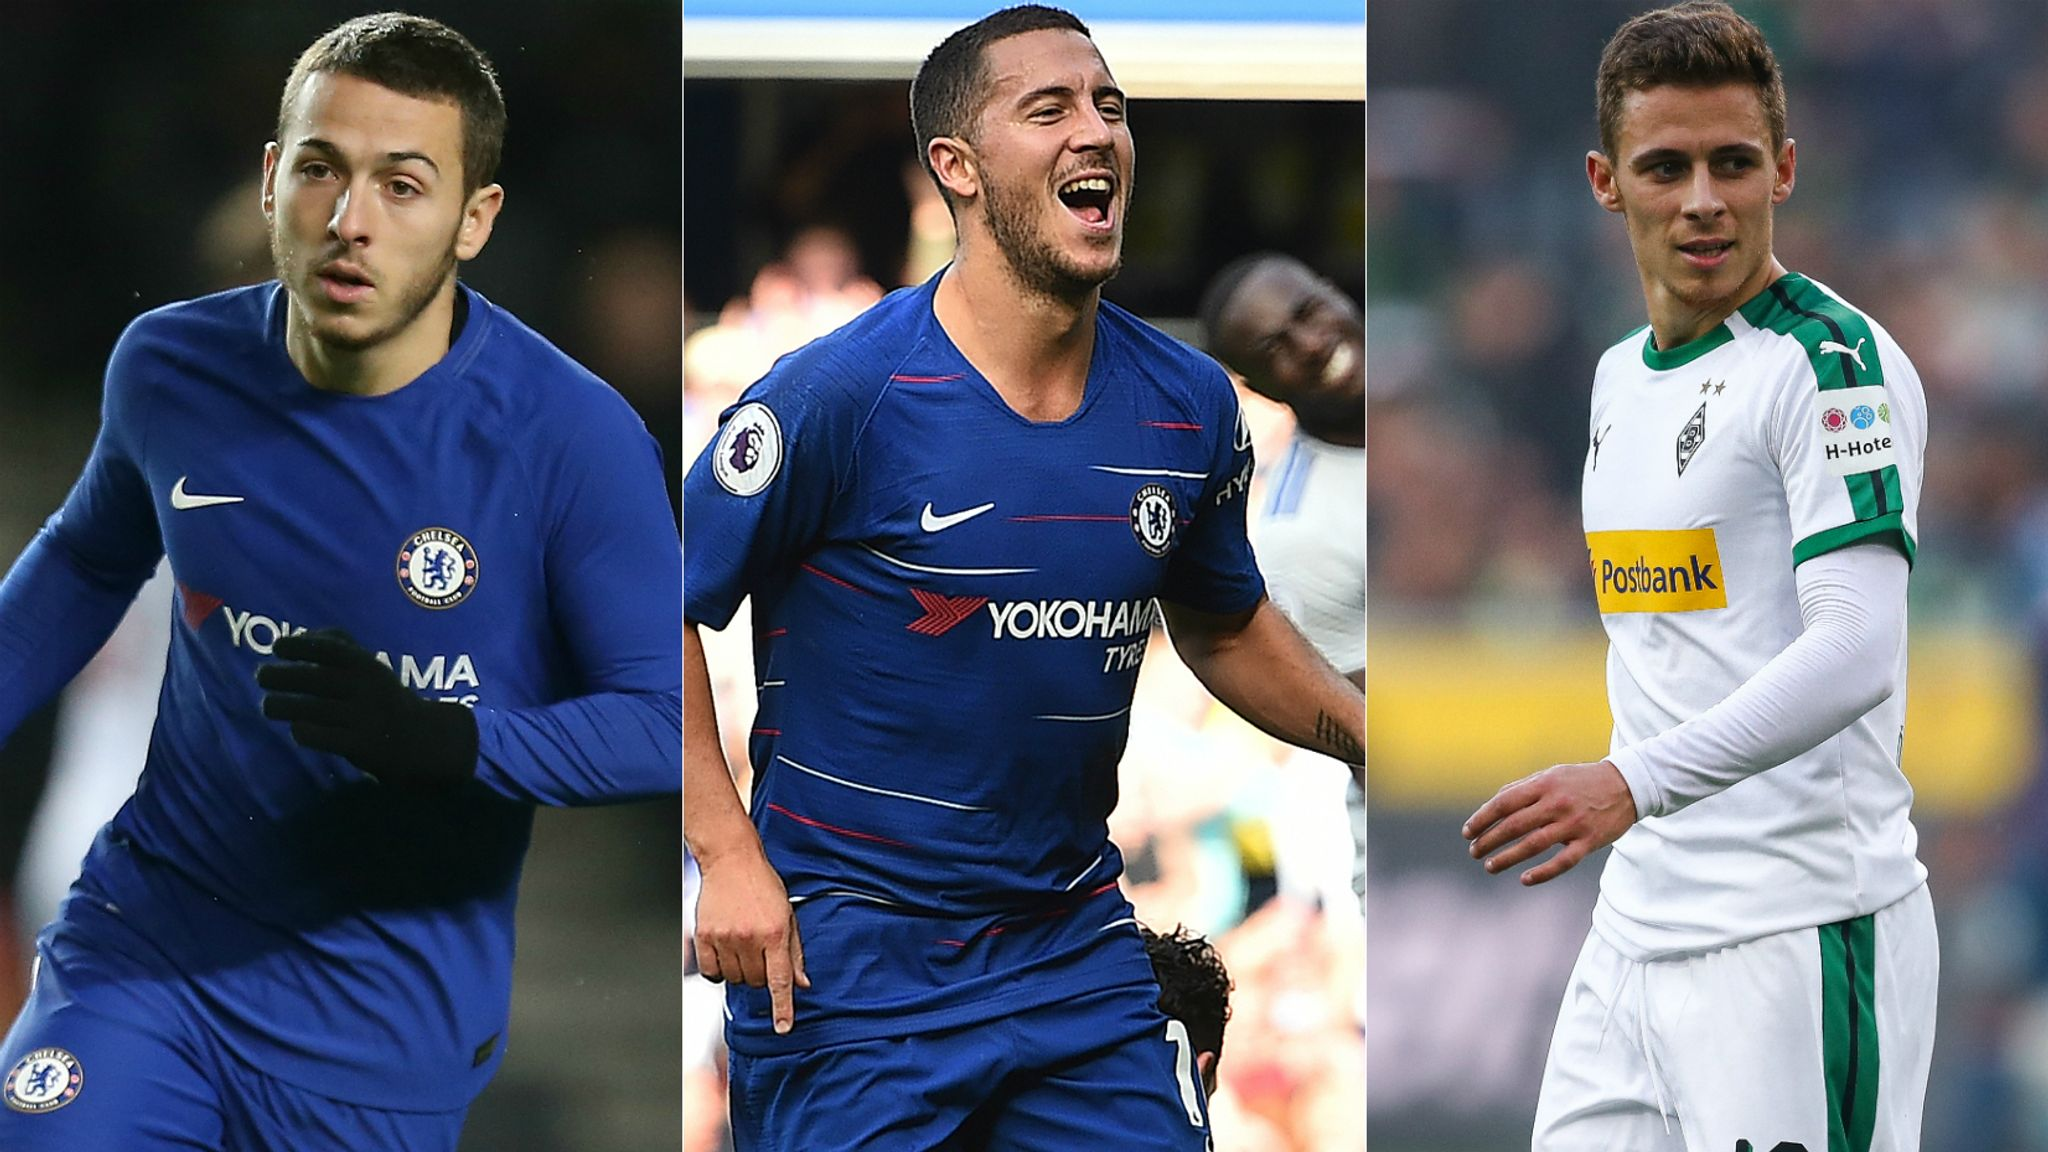 Eden Hazard being followed by brothers Thorgan and Kylian ...